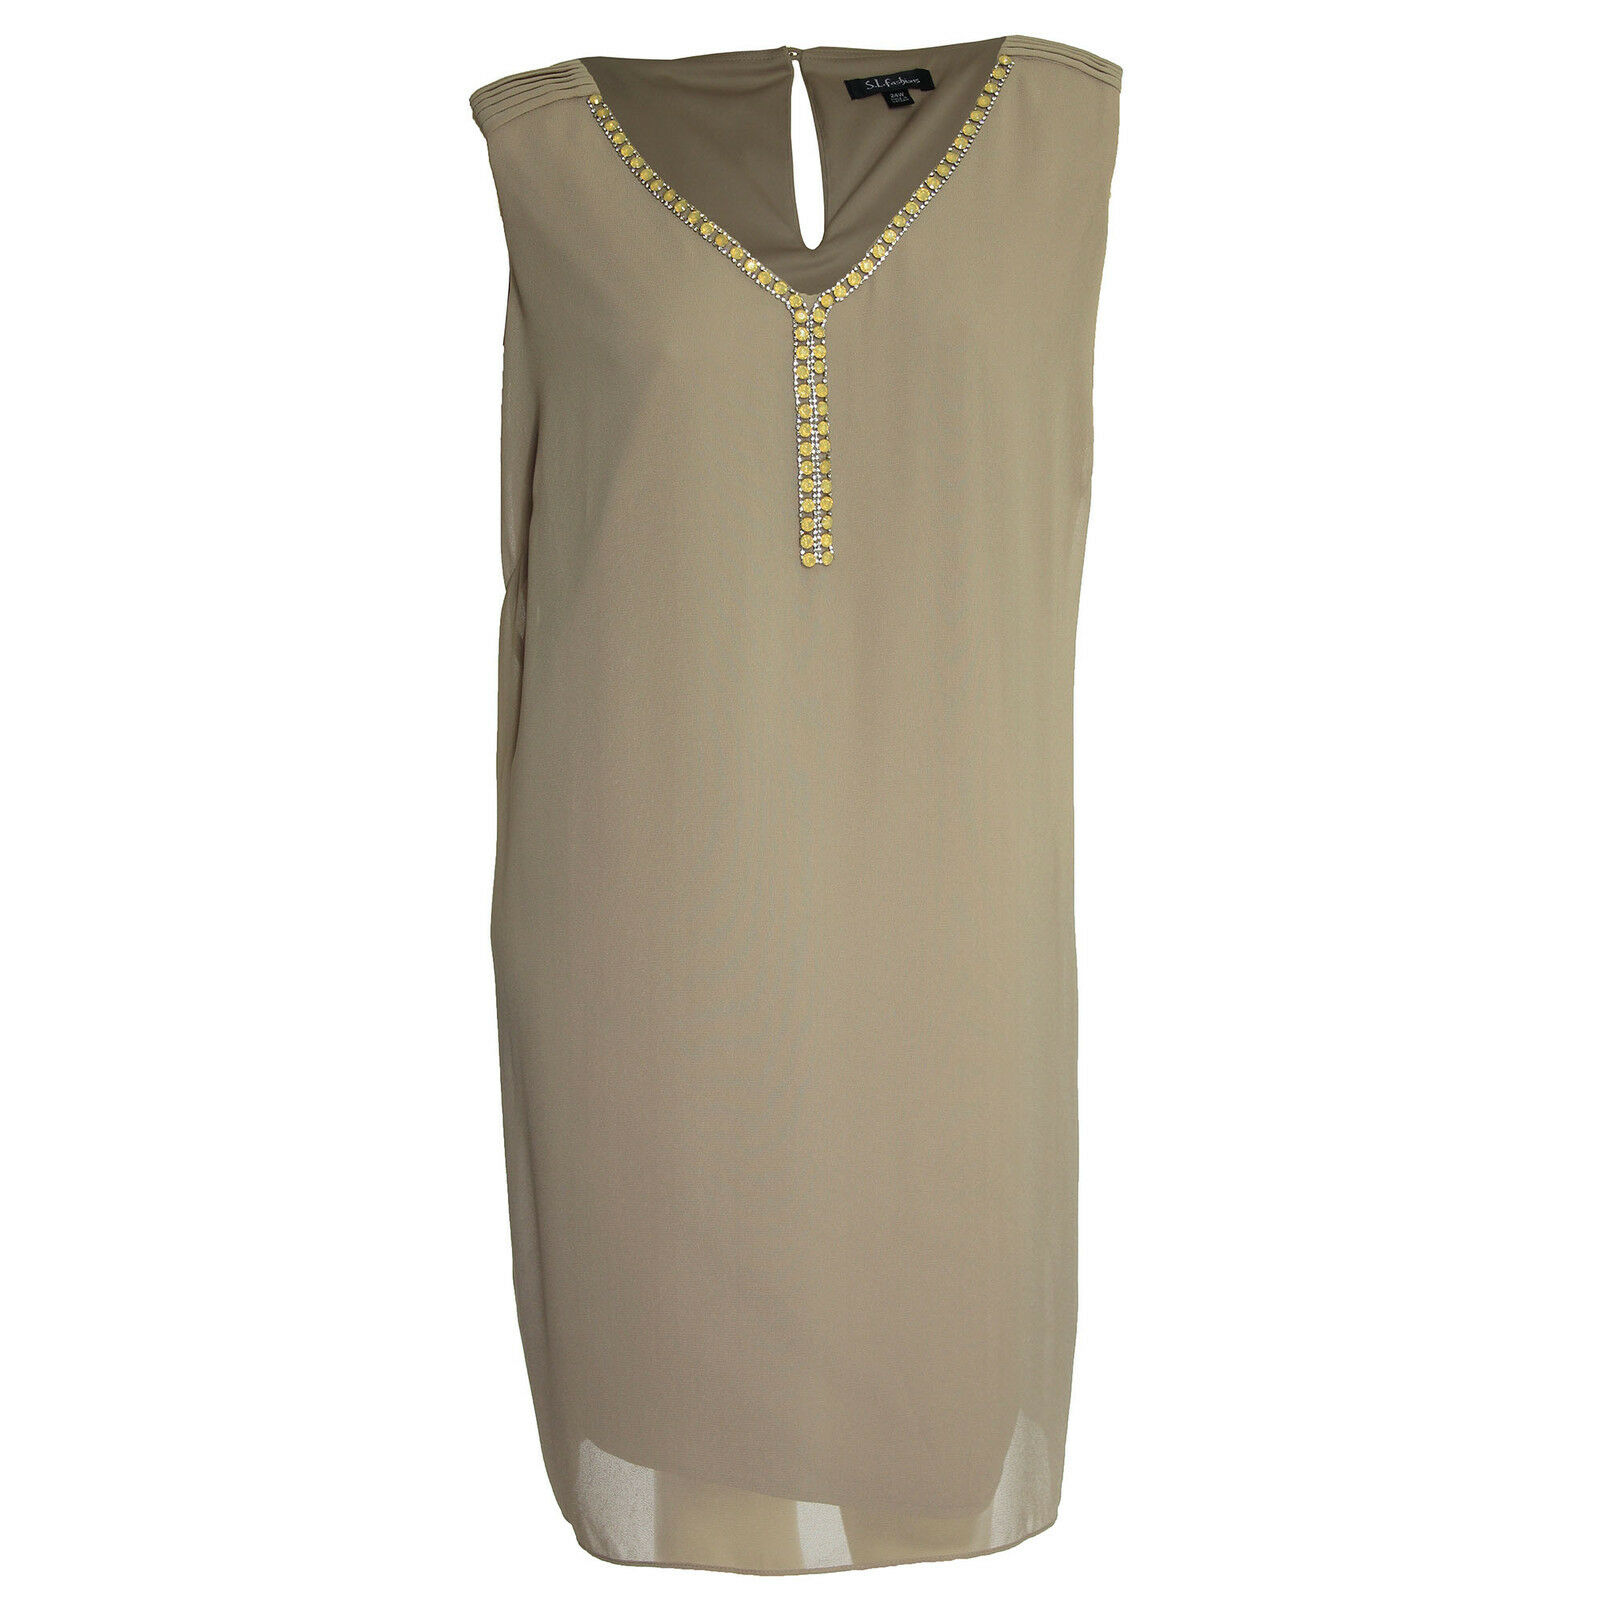 SL Fashions 24w Beige Sleeveless Embellished Shift Dress NWT FREE SHIP Plus Size